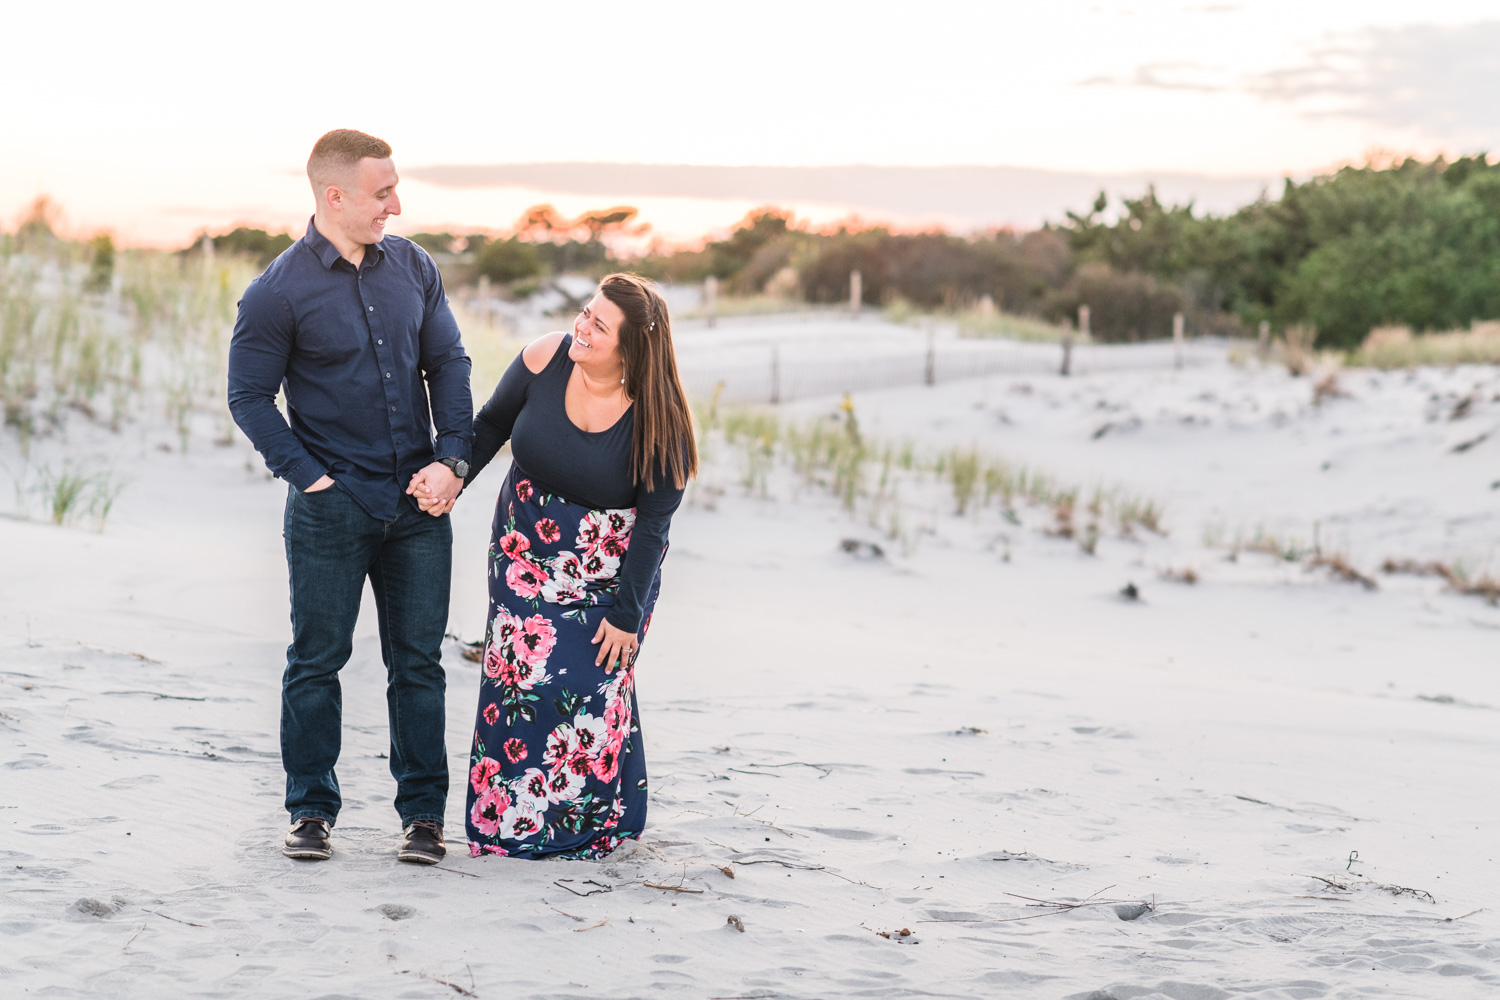 lbi-wedding-photographer-lbi-engagement-dan-beckie--16.jpg